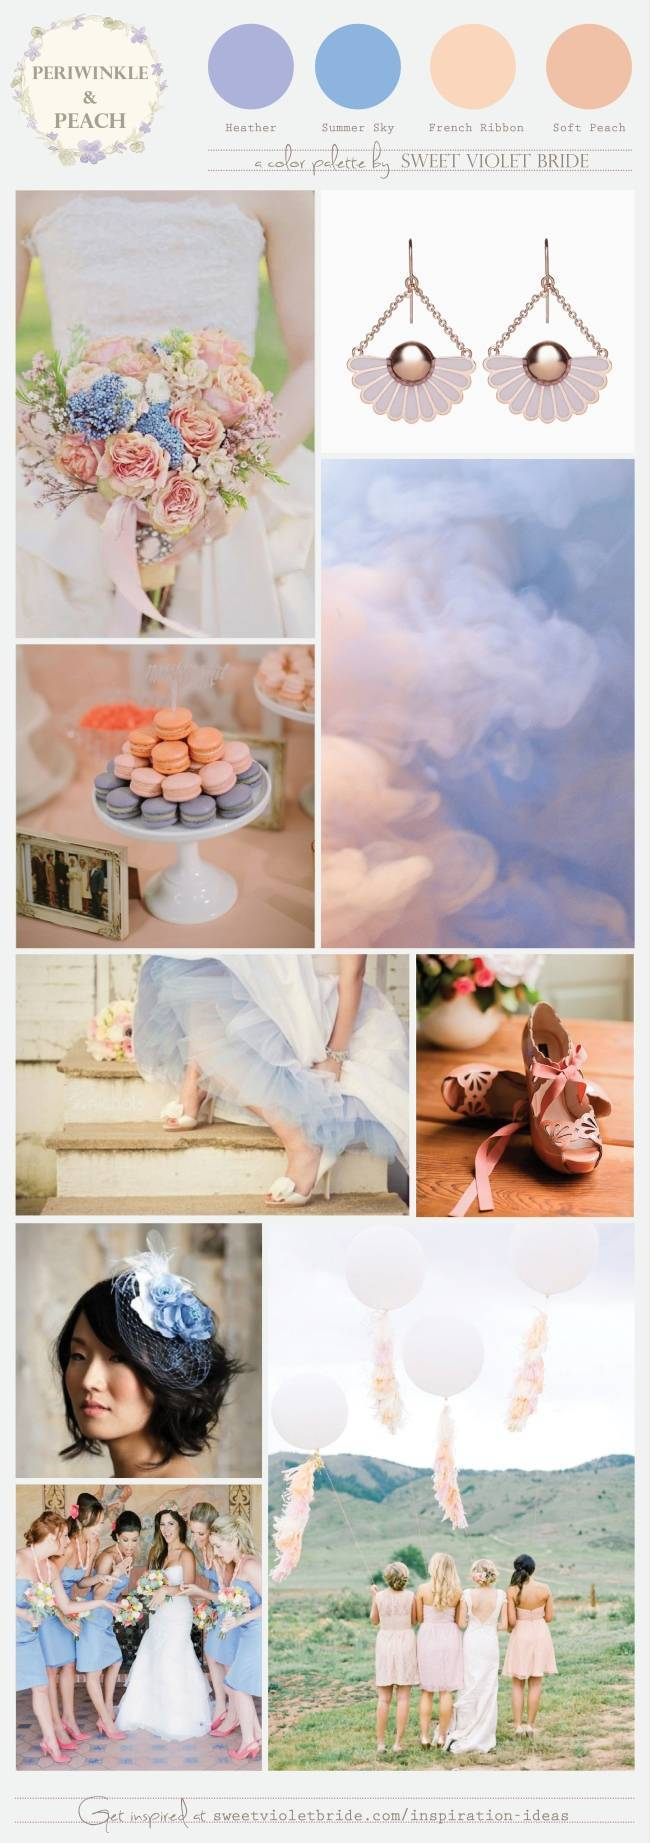 Peach + Periwinkle Color Palette